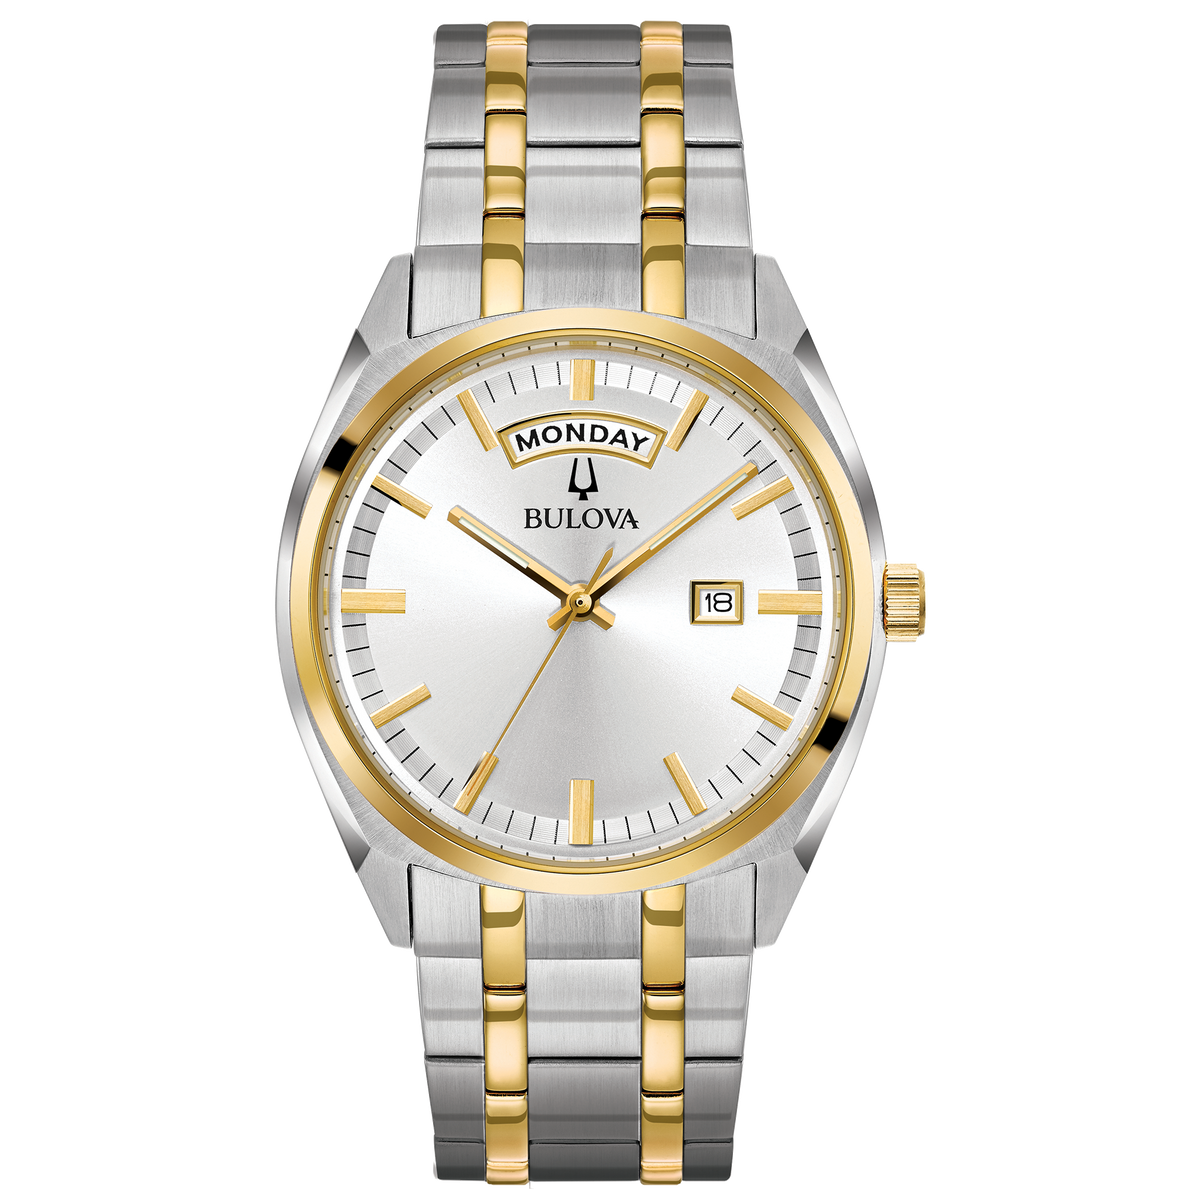 Bulova - Men's Classic Watch Two Tone with Day/Date